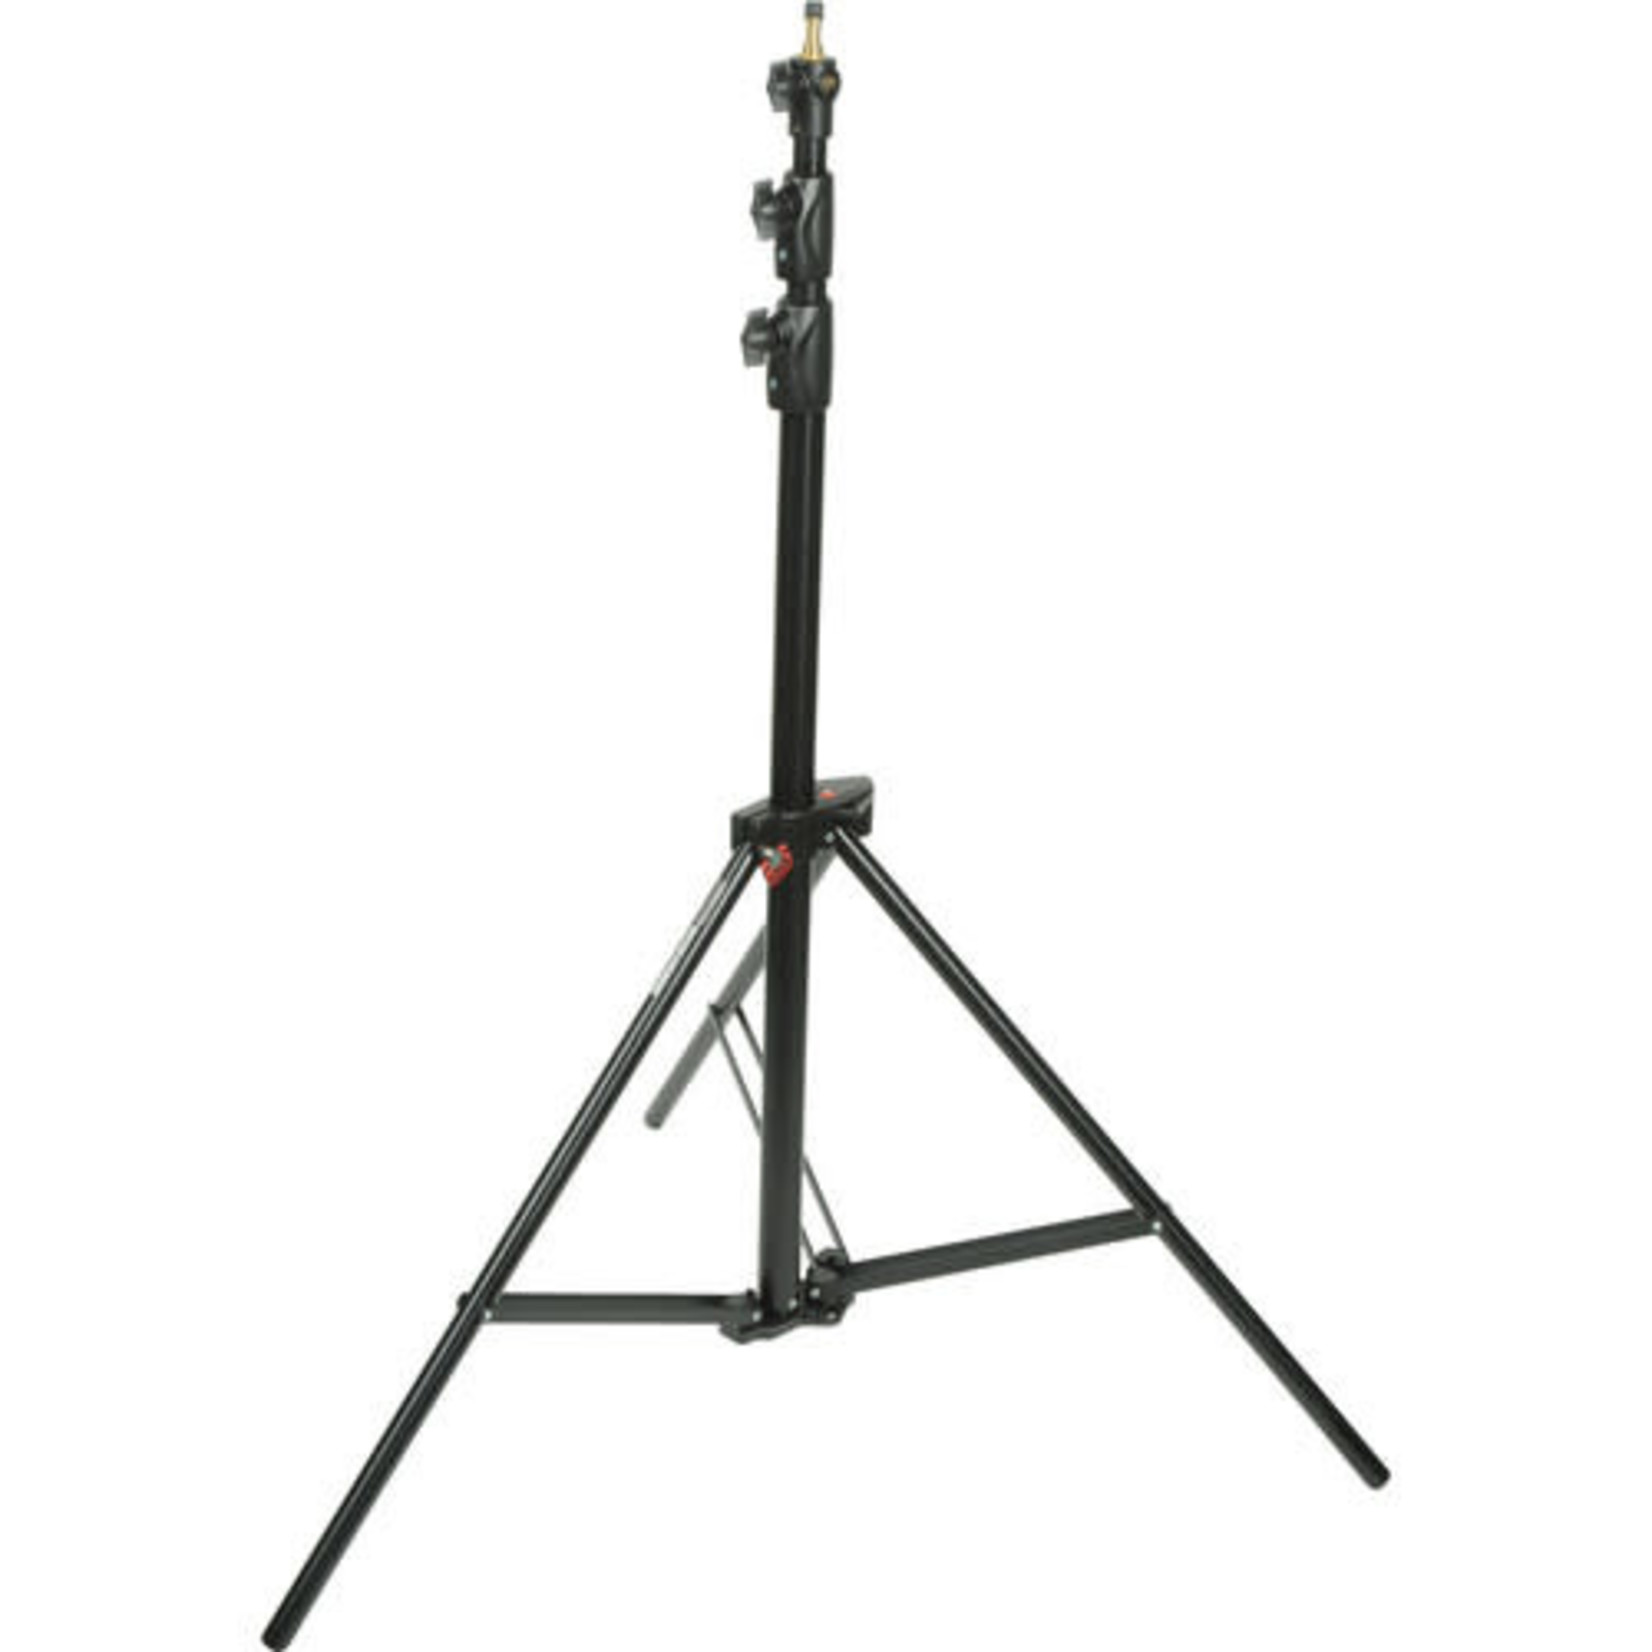 Manfrotto Manfrotto Alu Ranker Air-Cushioned Light Stand (Black, 9')